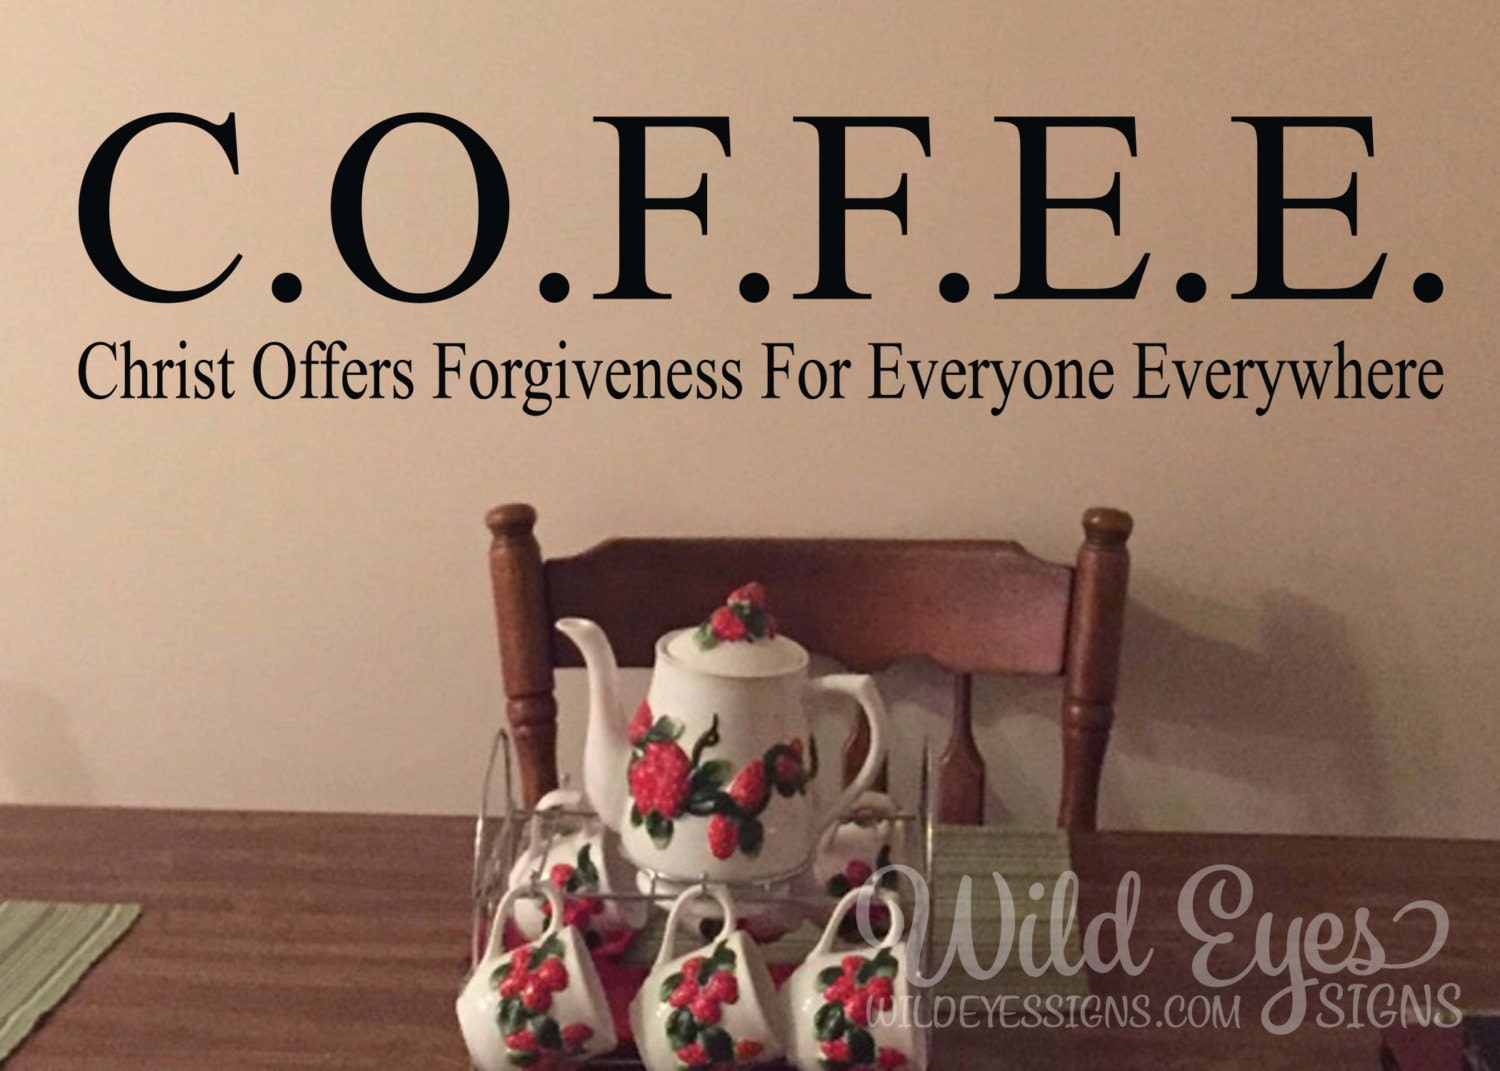 COFFEE Christ offers forgiveness for everyone everywhere